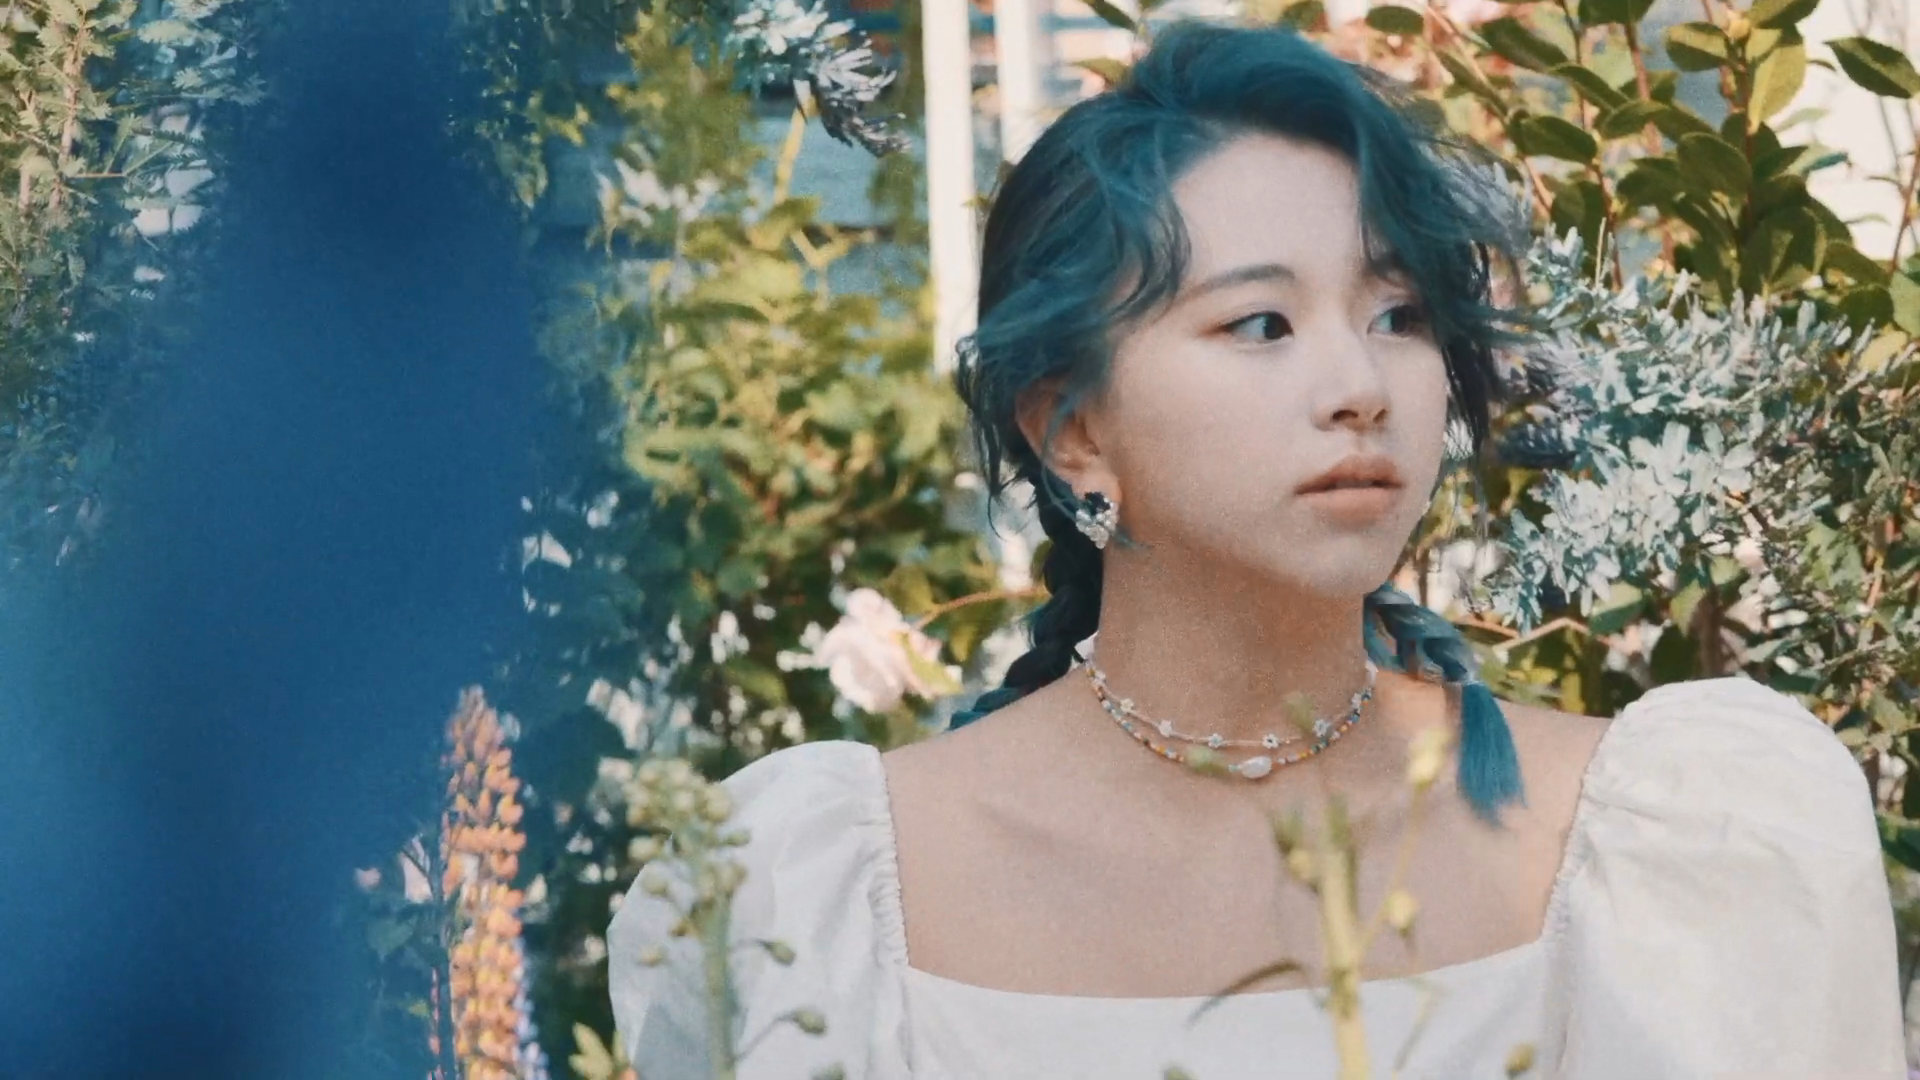 TWICE MORE & MORE Chaeyoung Concept Film Screencaps (HD)